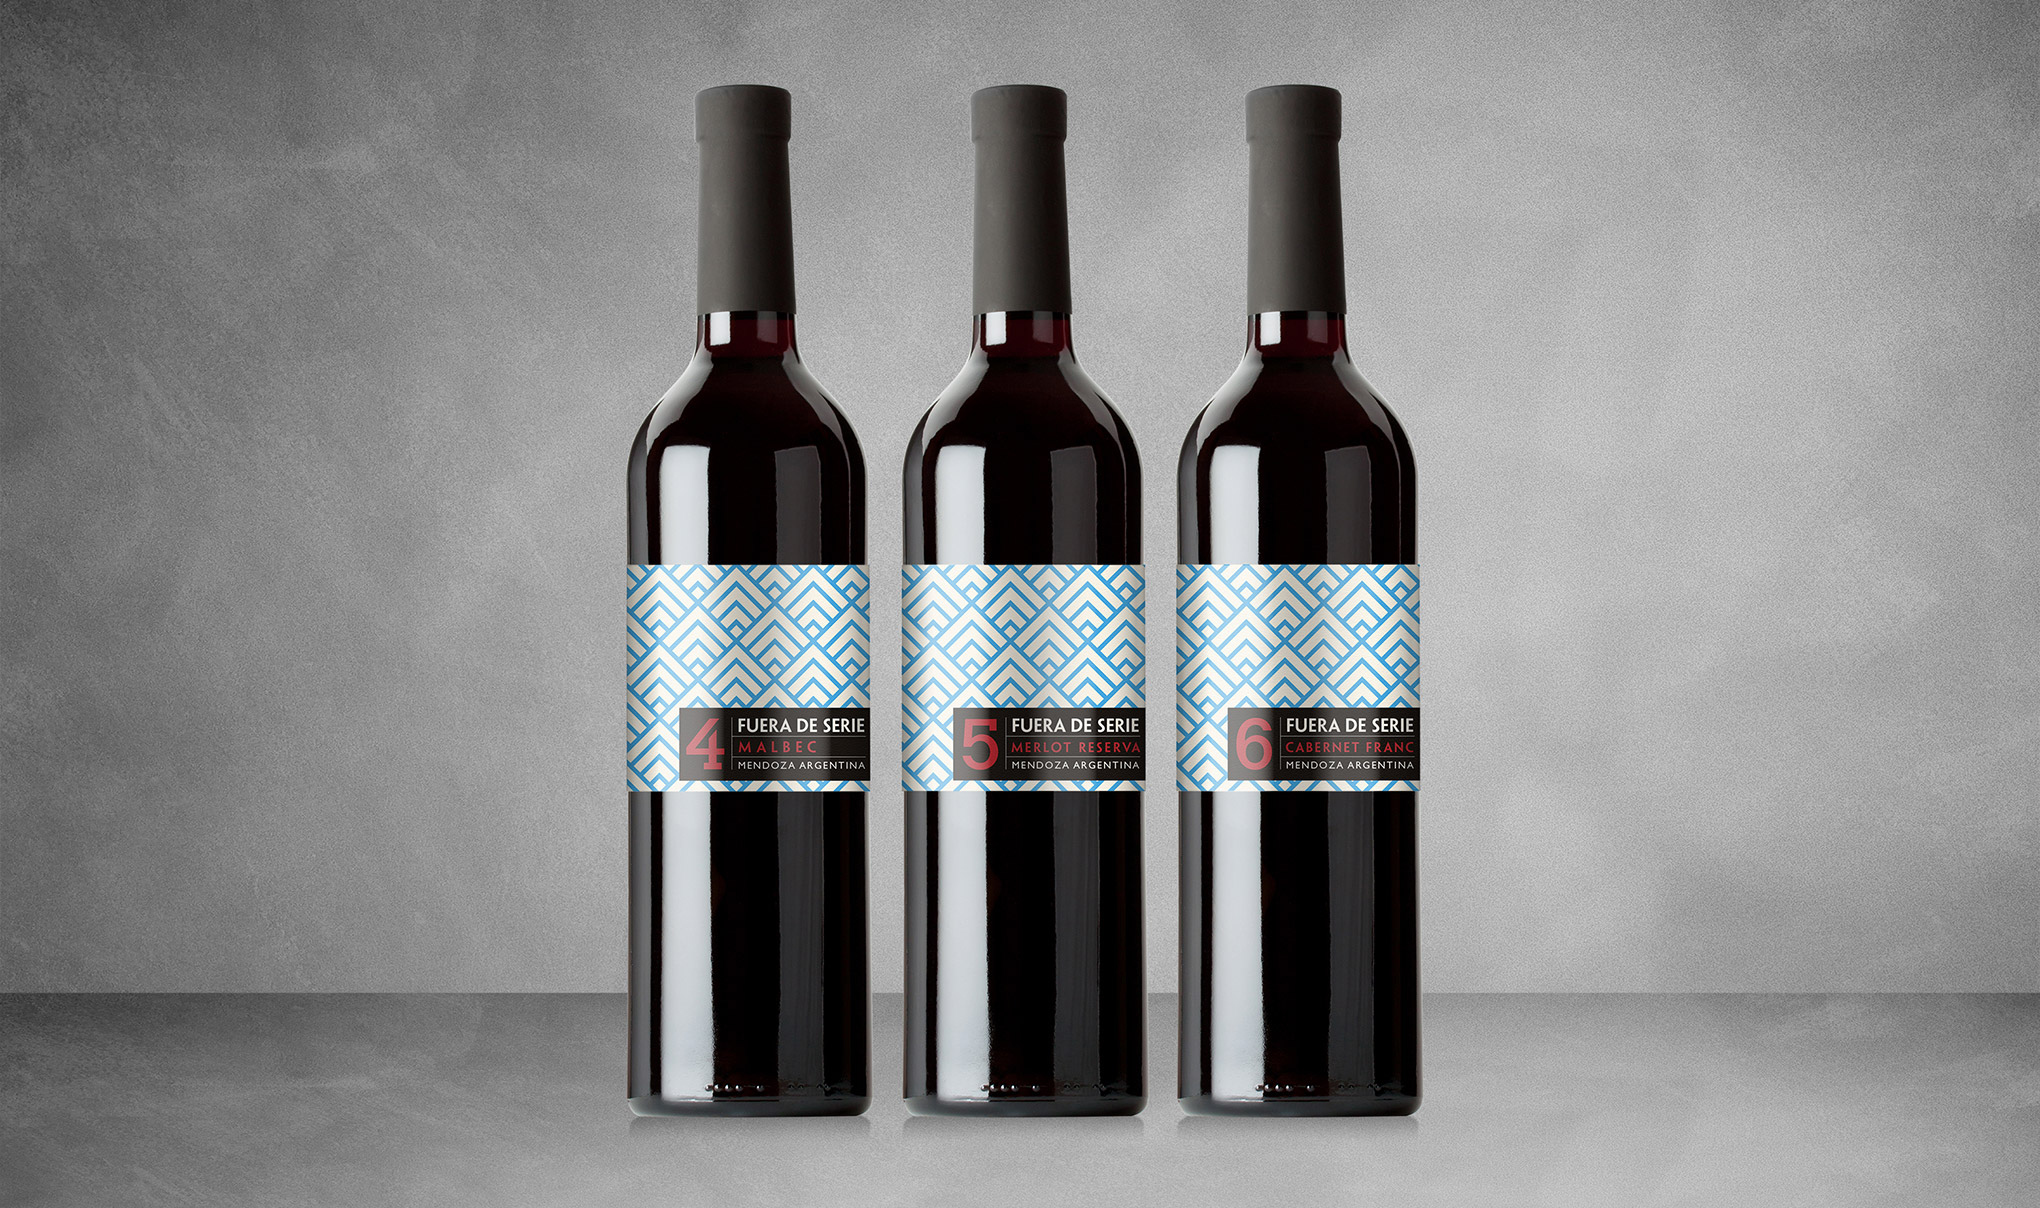 Wine label design for Fuera De Serie wine. 3 bottles in a row showing different wines. Designed for Gaucho restaurants by creative agency, Flipflop Design Ltd.